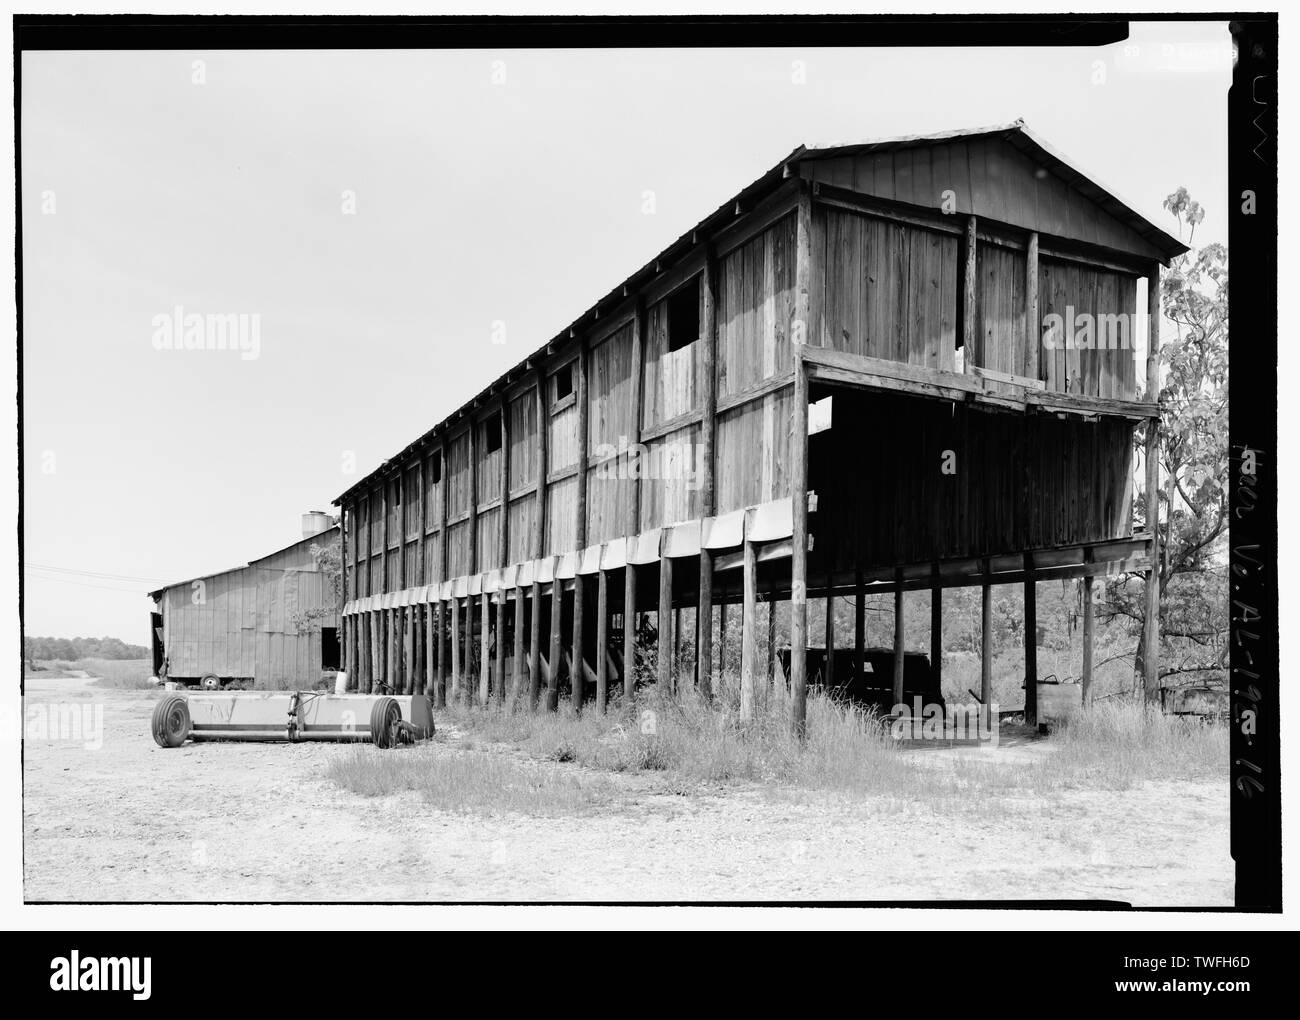 POLE BARN SHED USED FOR STORING TRACTORS (L2). - J. A. Minter and Son Plantation, 3 County Road 462, Selma, Dallas County, AL - Stock Image